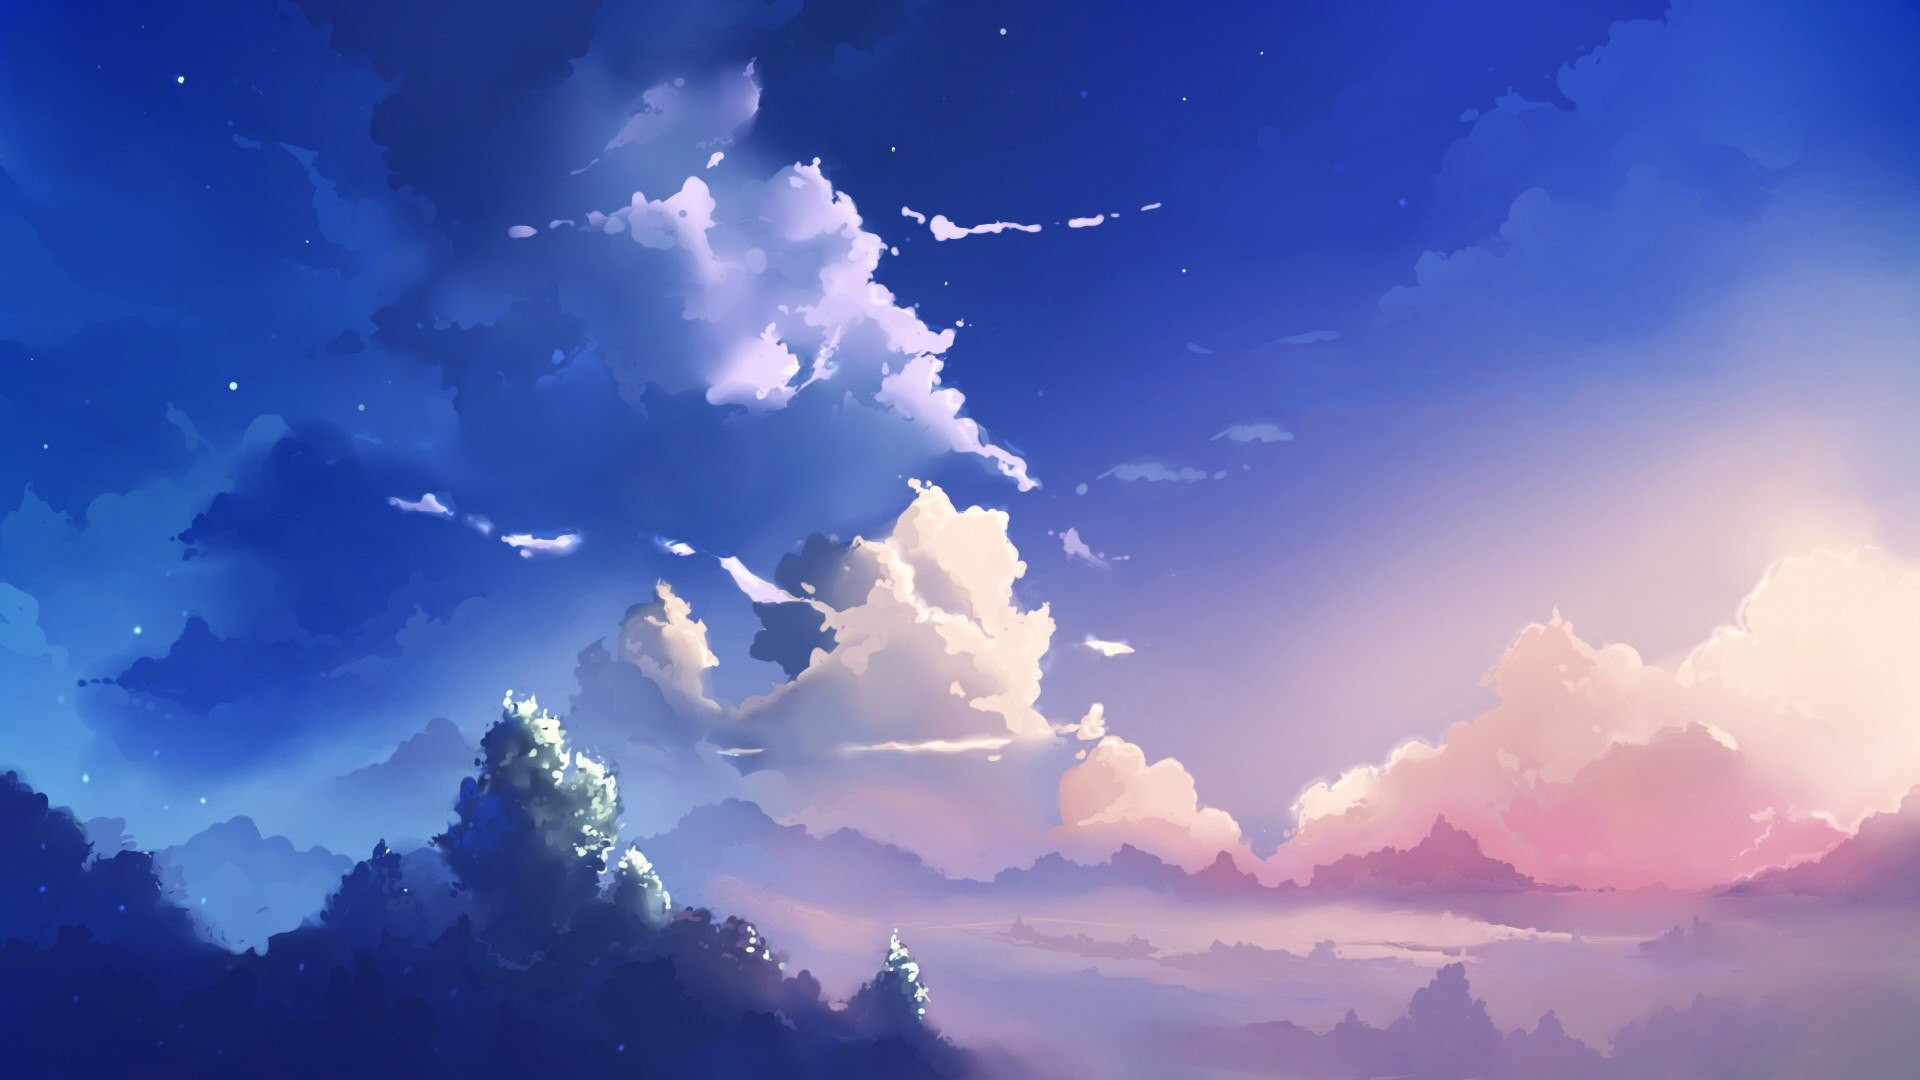 anime background ·① download free cool wallpapers for desktop